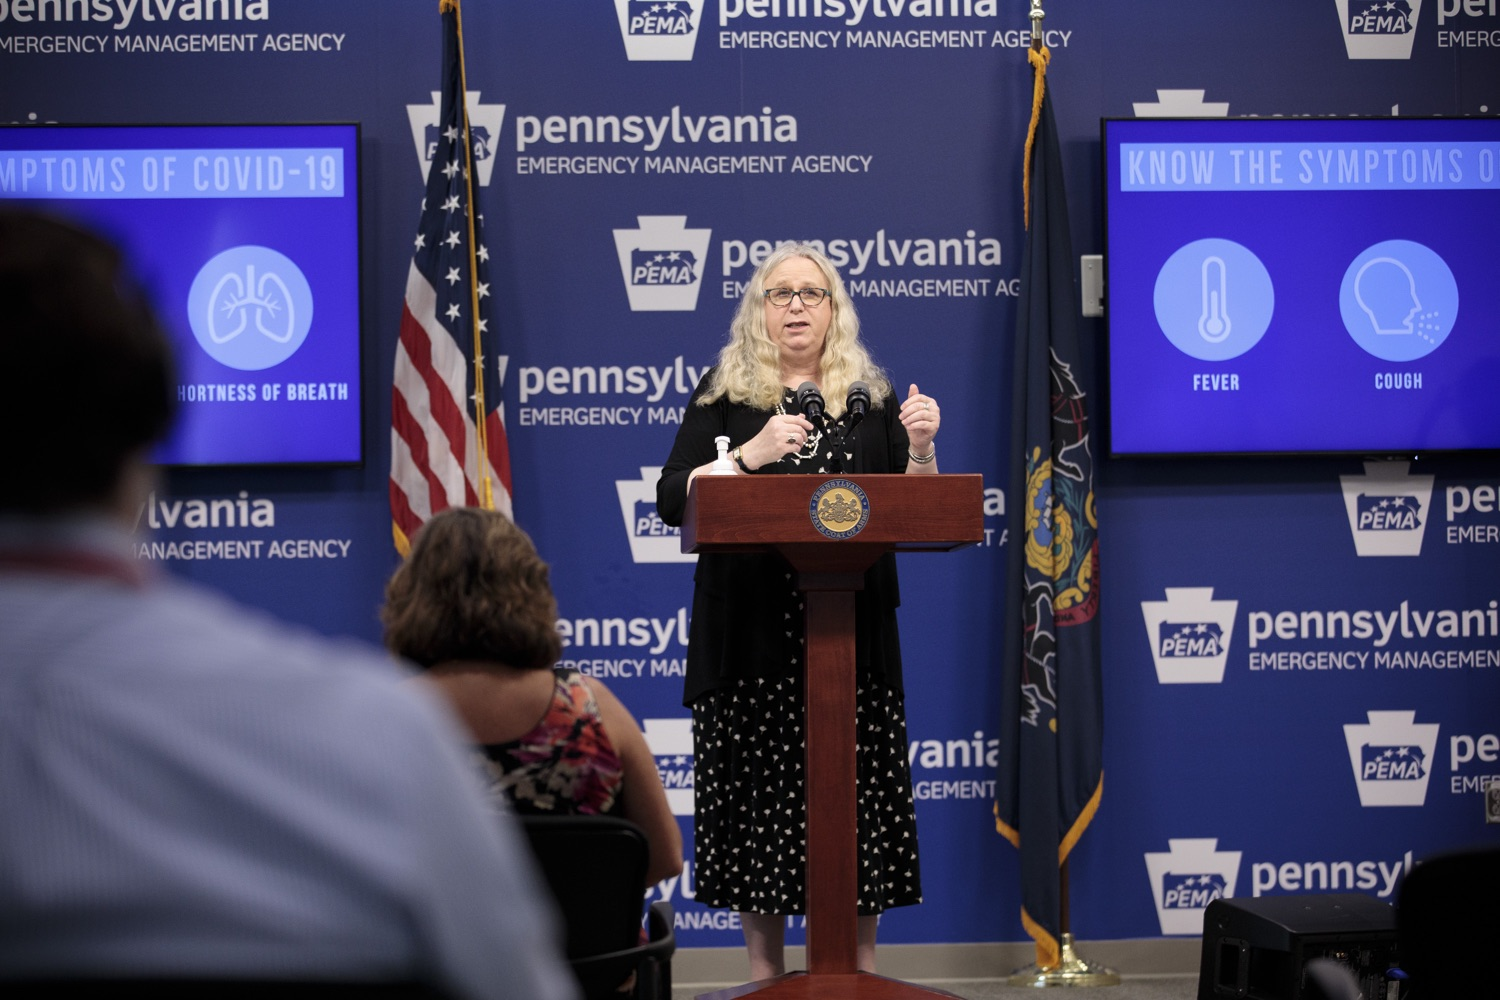 "<a href=""https://filesource.wostreaming.net/commonwealthofpa/photo/18258_doh_covidUpdate_dz_007.jpg"" target=""_blank"">⇣ Download Photo<br></a>Pennsylvania Secretary of Health Dr. Rachel Levine speaking to the press.  The Pennsylvania Department of Health today confirmed as of 12:00 a.m., September 14, that there were 638 additional positive cases of COVID-19 on September 13 and 620 additional positive cases of COVID-19 on September 14, bringing the statewide total to 145,063. All 67 counties in Pennsylvania have cases of COVID-19.  SEPTEMBER 14, 2020 - HARRISBURG, PA"